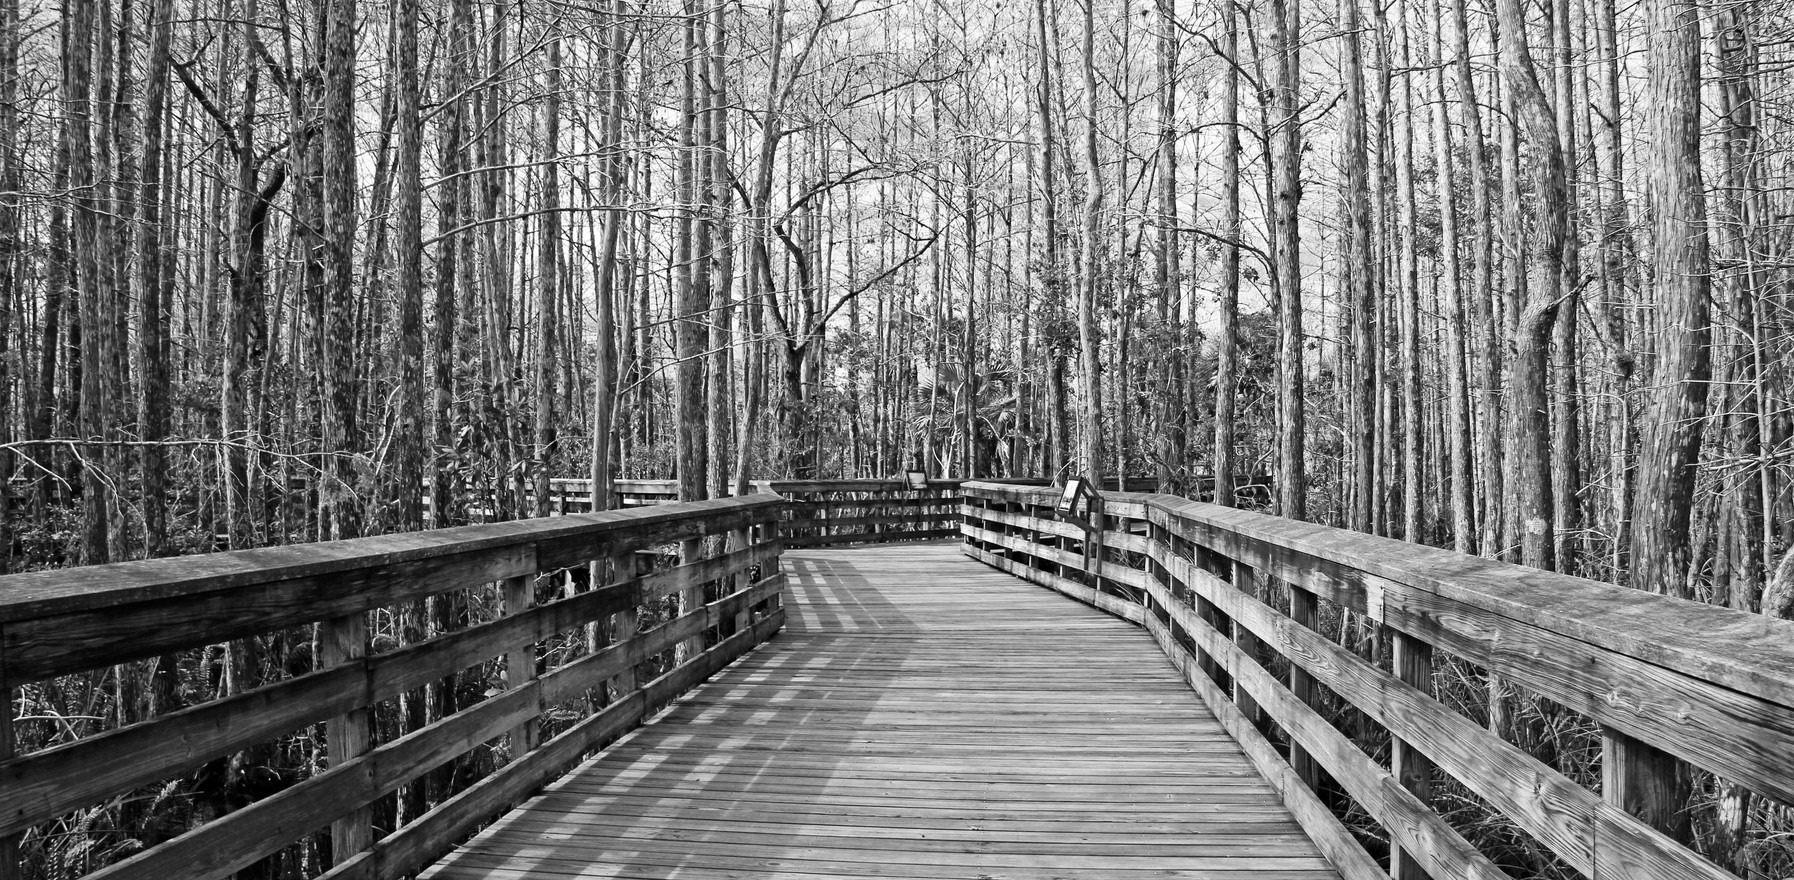 Grassy Waters Boardwalk